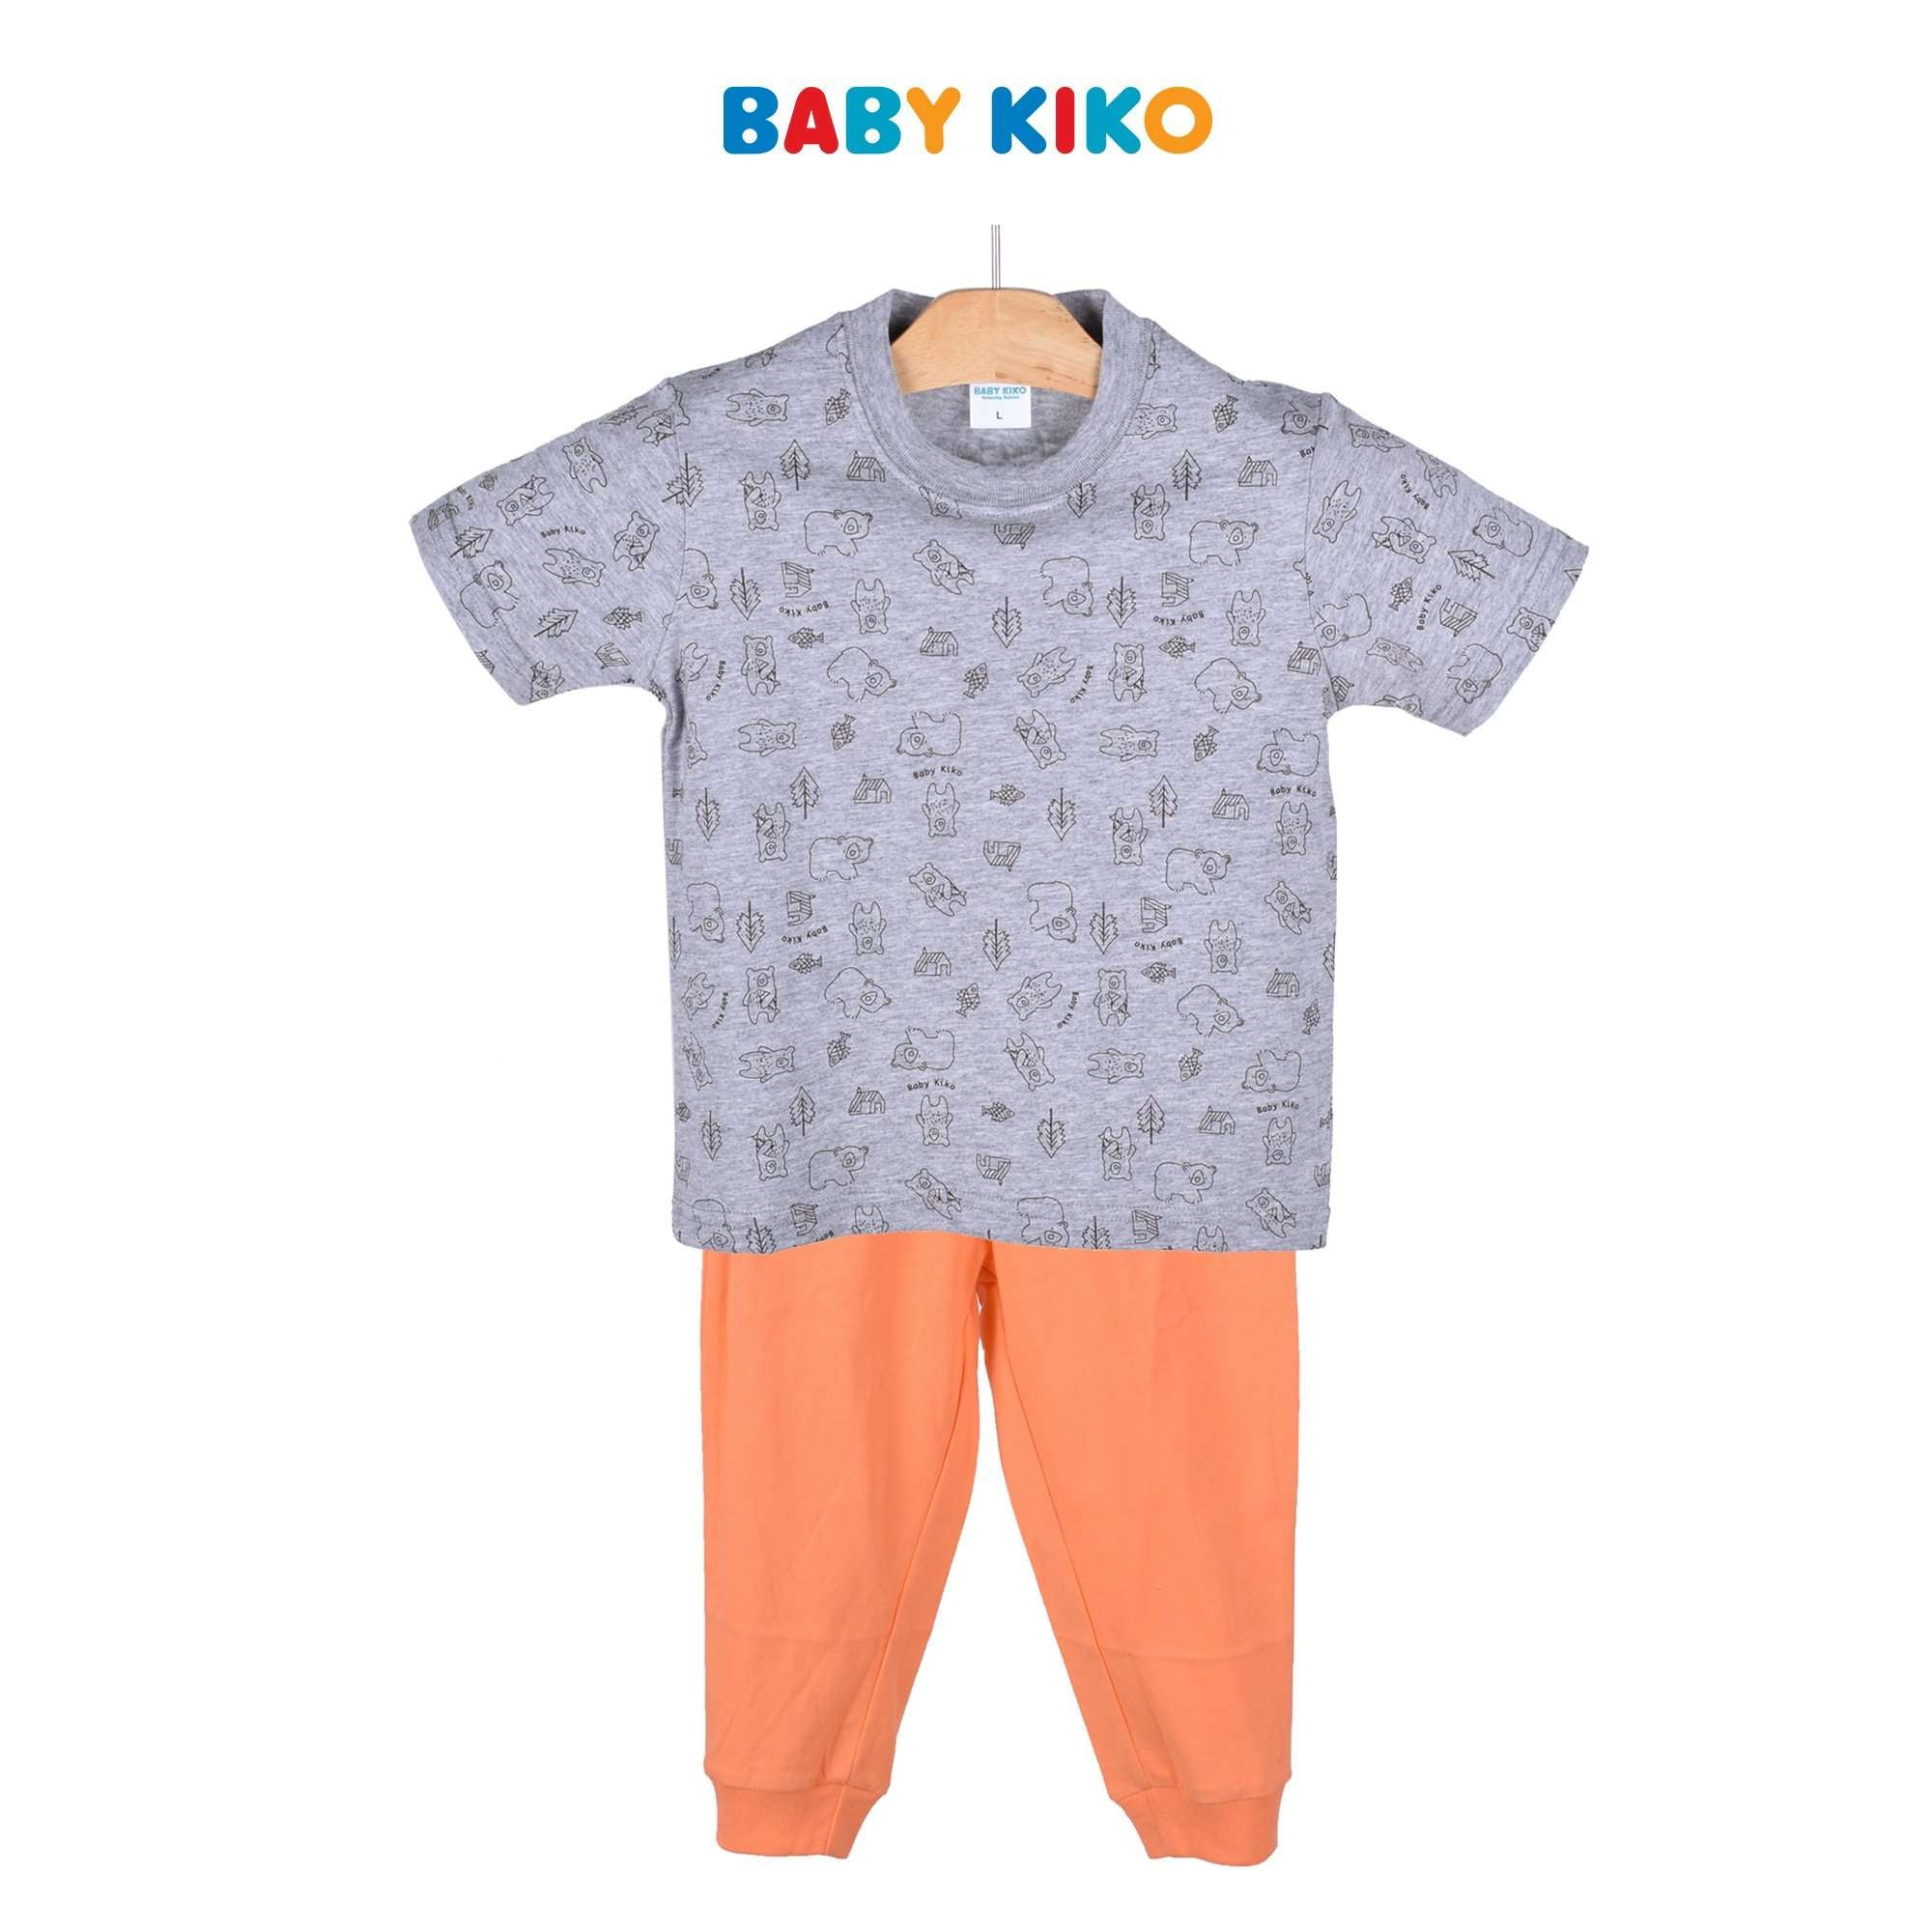 Baby KIKO Toddler Boy Short Sleeve Long Pants Suit 325150-421 : Buy Baby KIKO online at CMG.MY